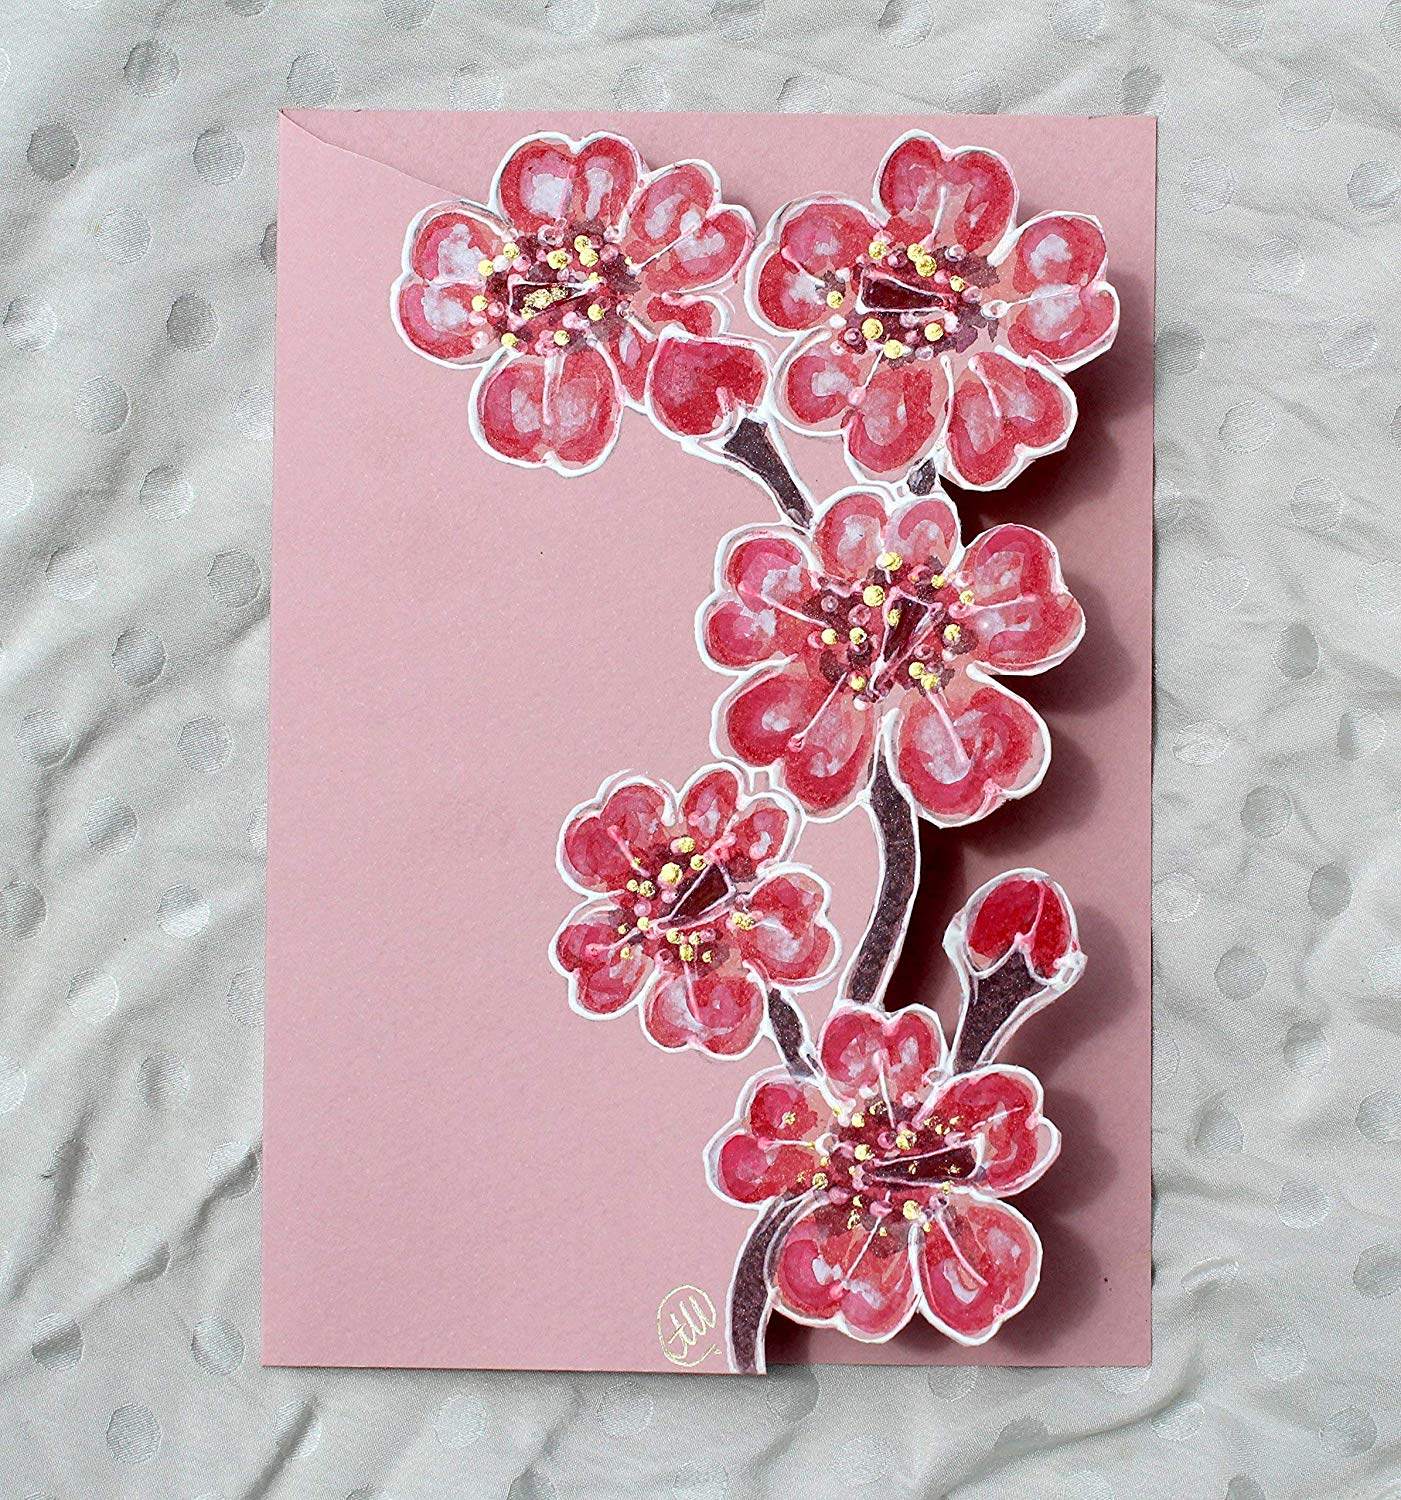 Sale!!!20% Off,Unique Cherry Blossom Unusual Gift Card/Sakura Blossom/Hand Made Painted Card/Personalised Cherry Blossom Card/Spring Card/Japanese Greeting Card.